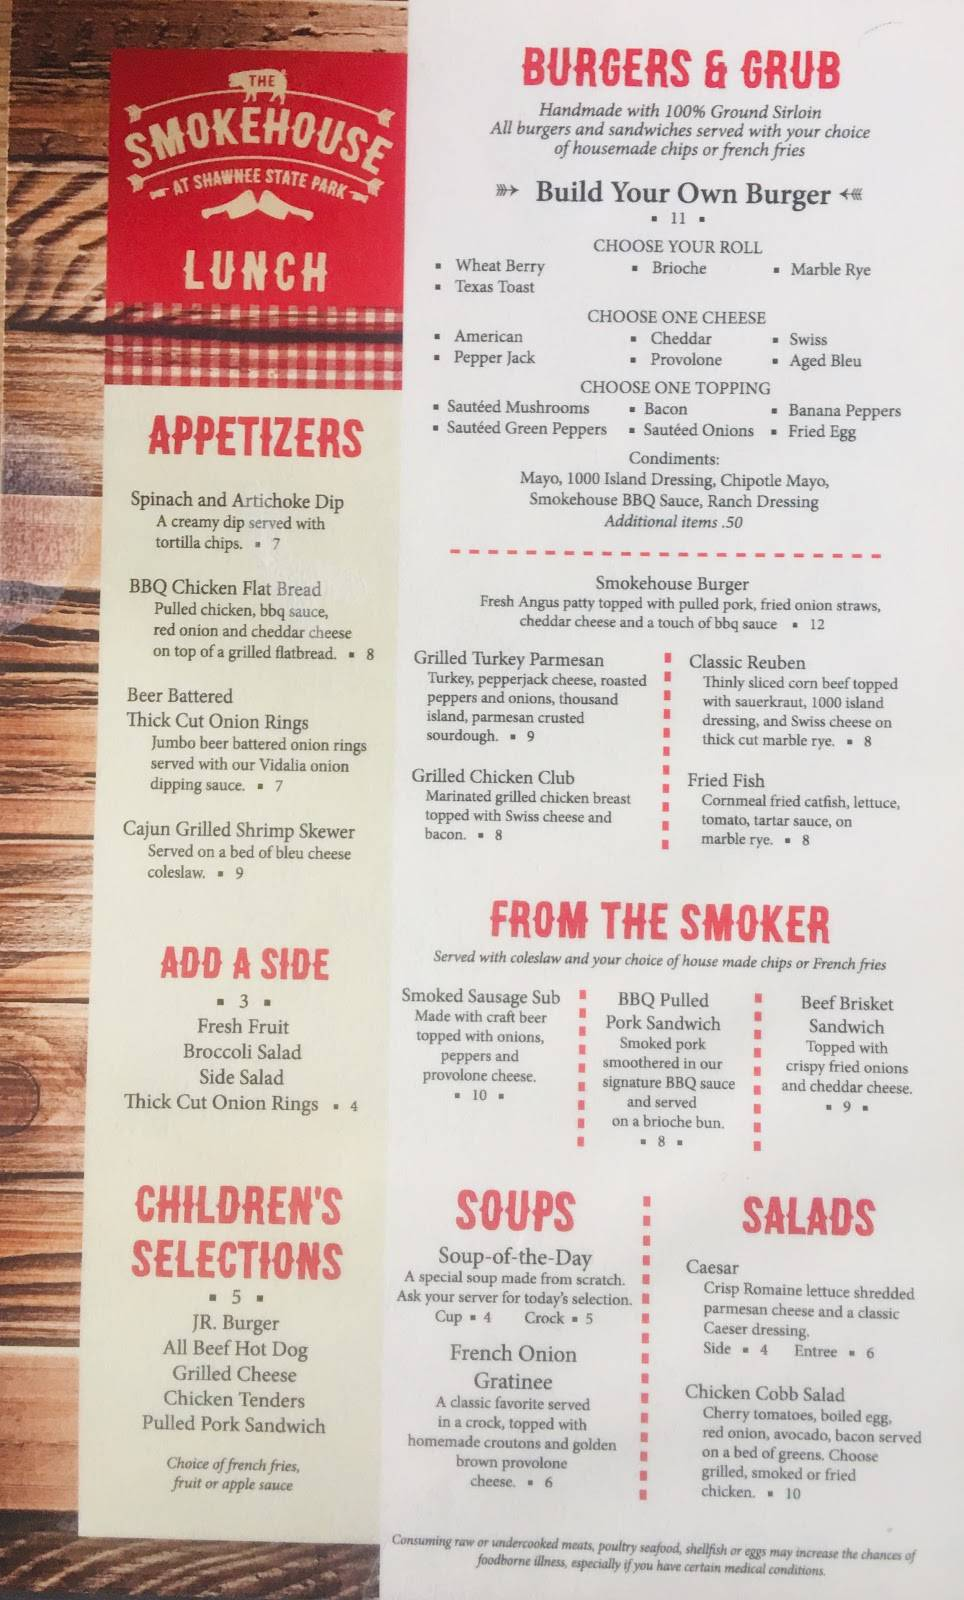 The Smokehouse at Shawnee Lodge | restaurant | 4404b OH-125, West Portsmouth, OH 45663, USA | 7408586621 OR +1 740-858-6621